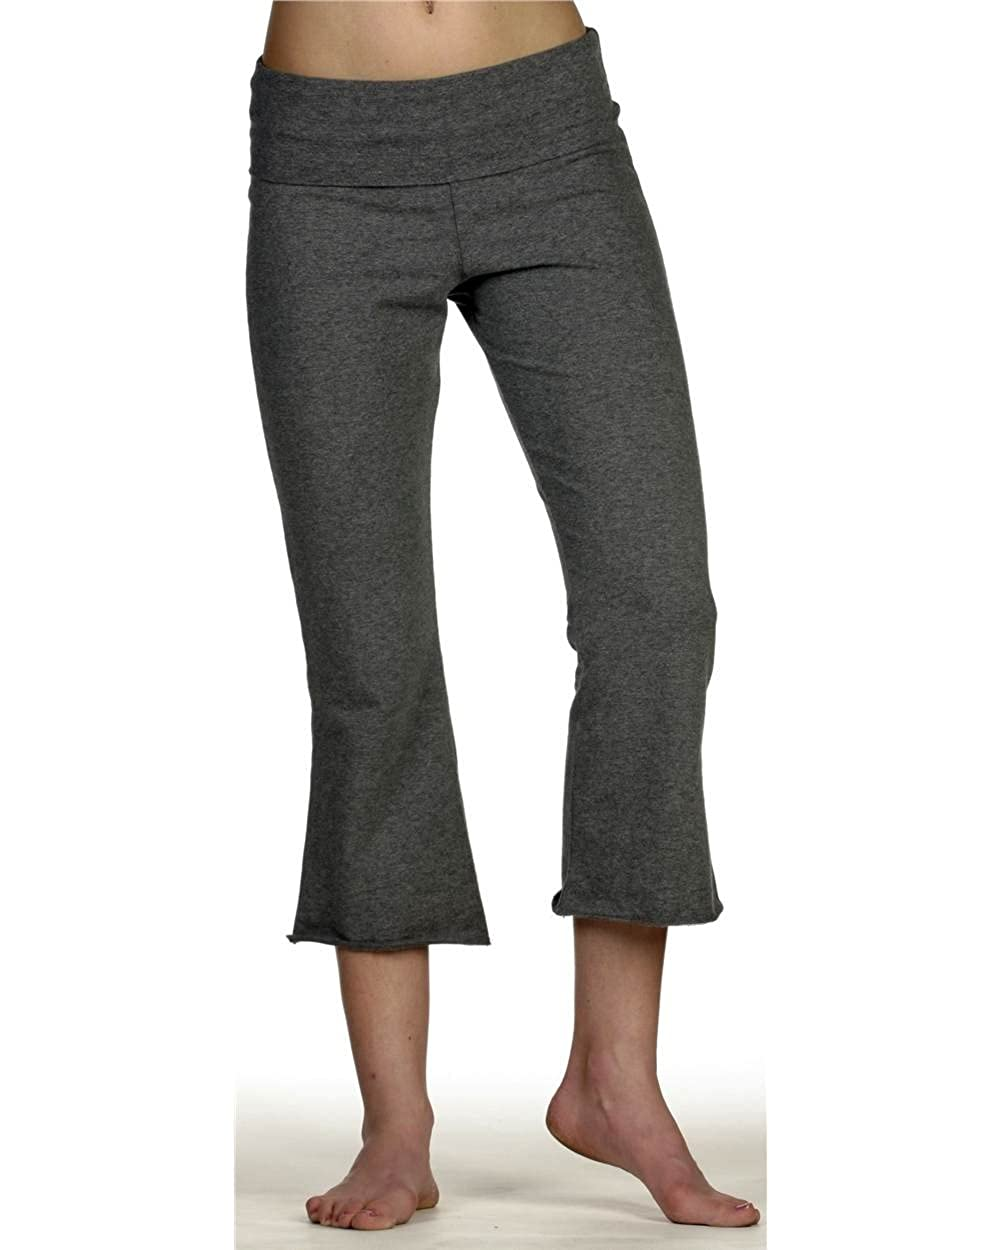 Bella+Canvas 815 - Ladies' Capri Pants M24915